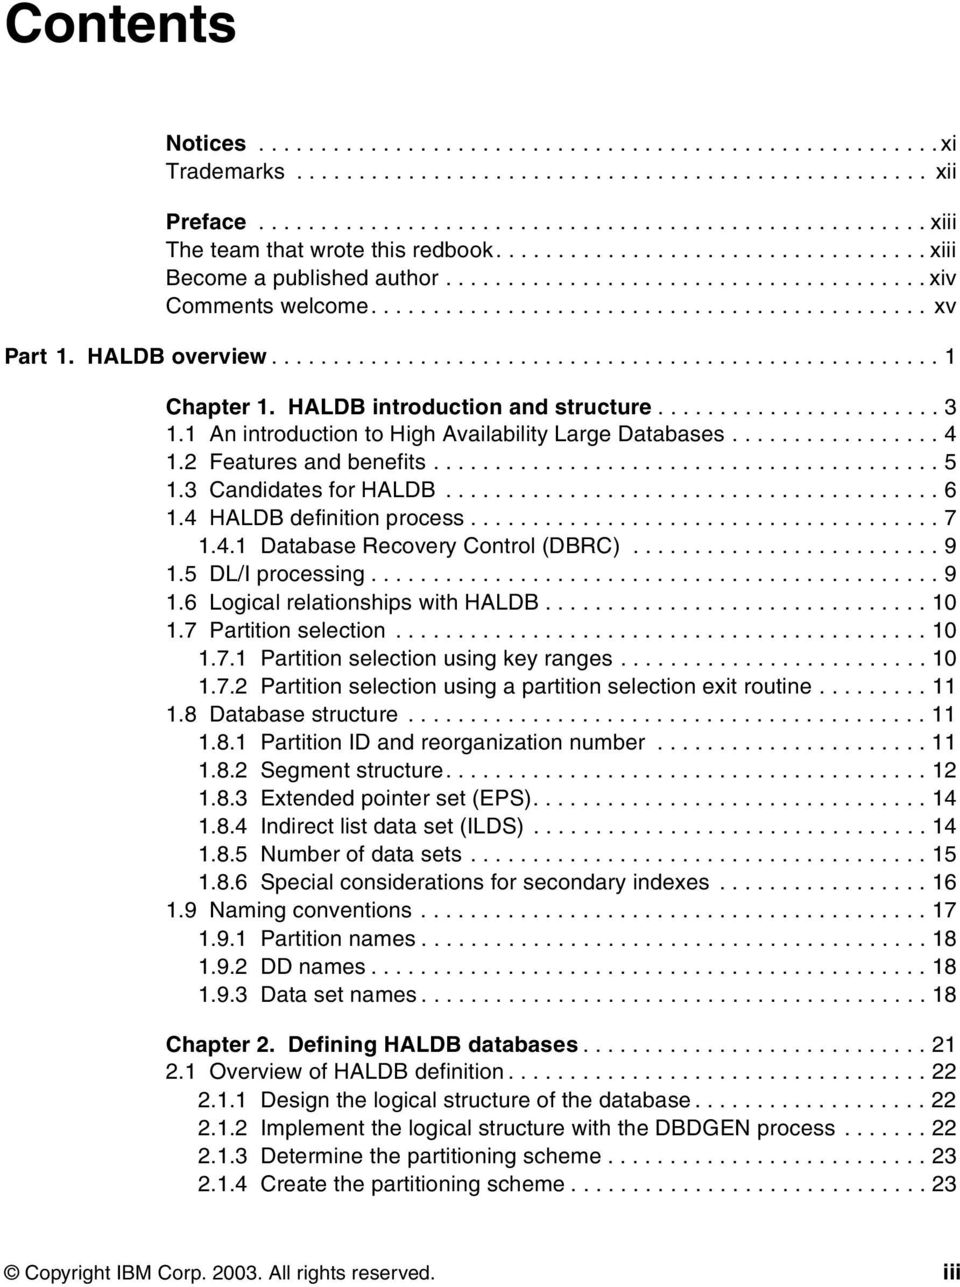 ..................................................... 1 Chapter 1. HALDB introduction and structure....................... 3 1.1 An introduction to High Availability Large Databases................. 4 1.